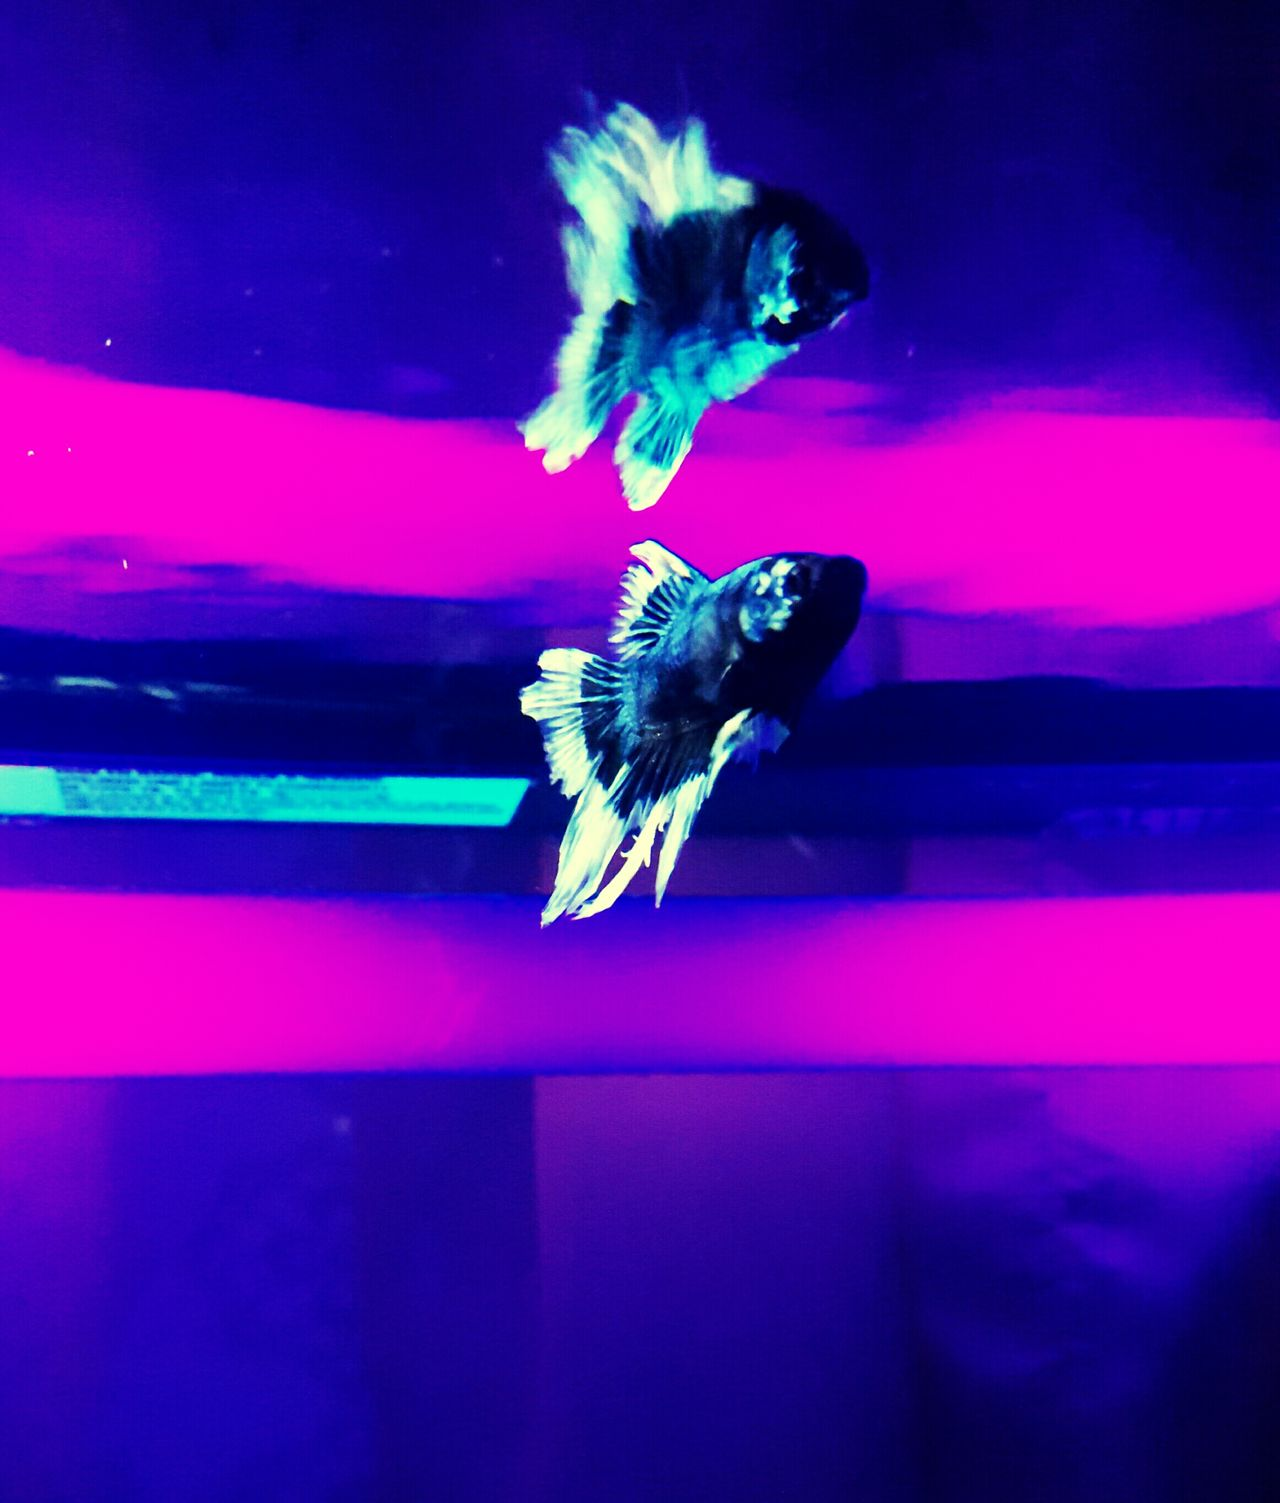 Blacklight Betta Fish Light Reflection Water Reflections Light And Water Fish Water - Collection EyeEm Gallery No Edit/no Filter Light-Play May 2016 Eye4photography  Light In The Darkness Light And Darkness  Light Breaking Reflection_collection Intricate Nature Nature_collection Likes Dailylifephotos Real Photography Phone Camera Pet Photography  Purple Color Tank Life